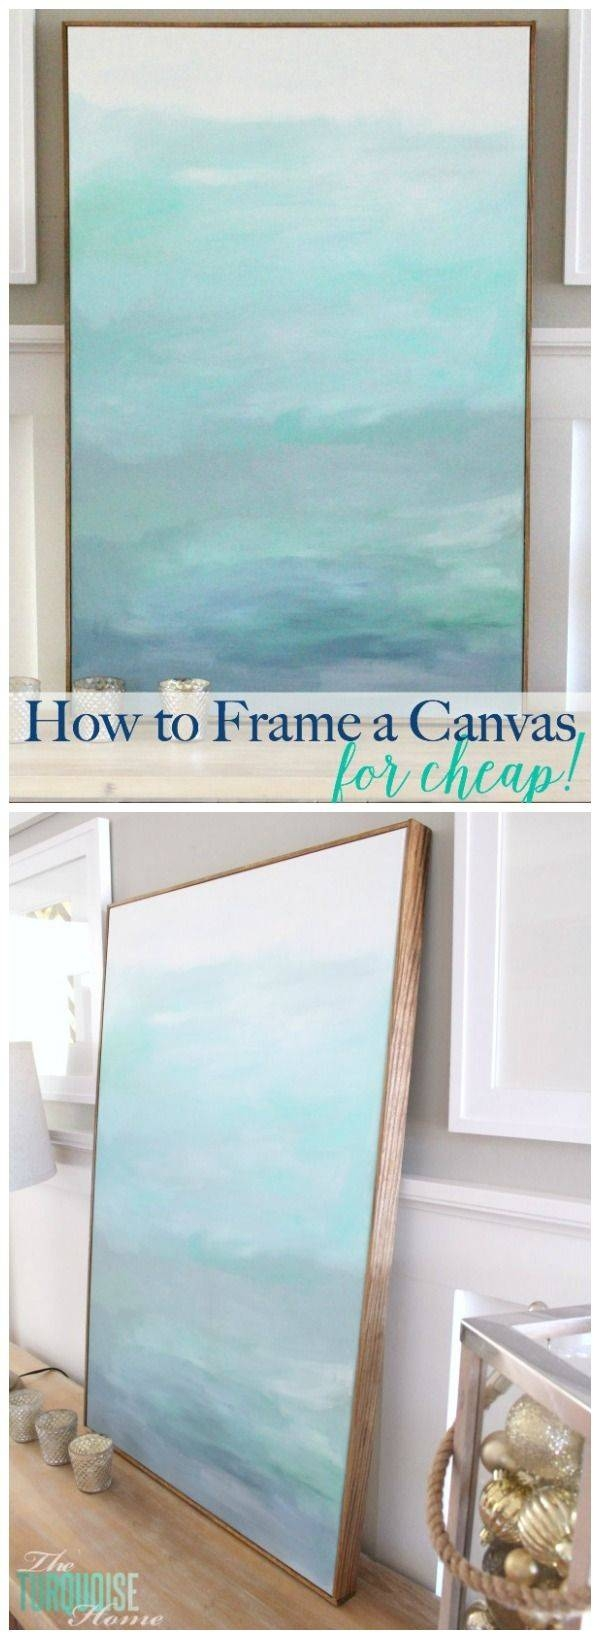 25+ Unique Diy Canvas Ideas On Pinterest | Diy Canvas Art, Puff With Most Popular Diy Pinterest Canvas Art (View 9 of 25)